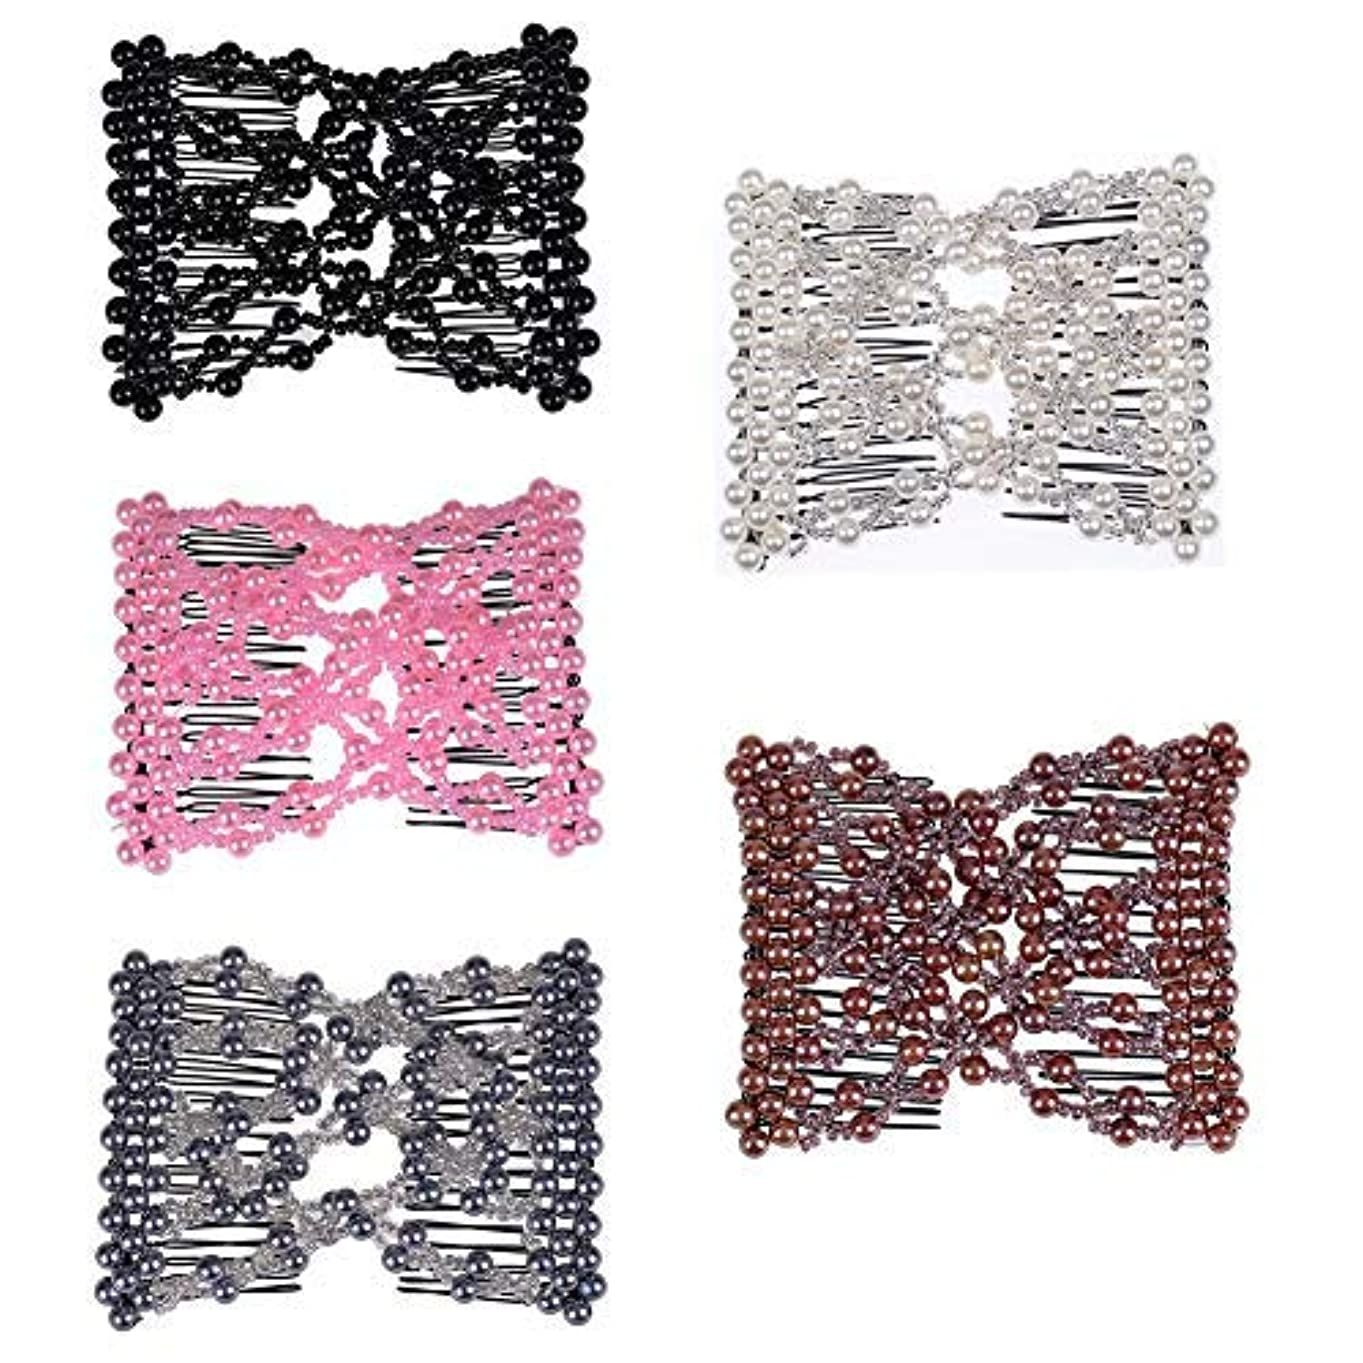 以前は聴衆故障Casualfashion 5Pcs Ez Stretch Beaded Hair Combs Double Magic Slide Metal Comb Clip Hairpins for Women Hair Styling...